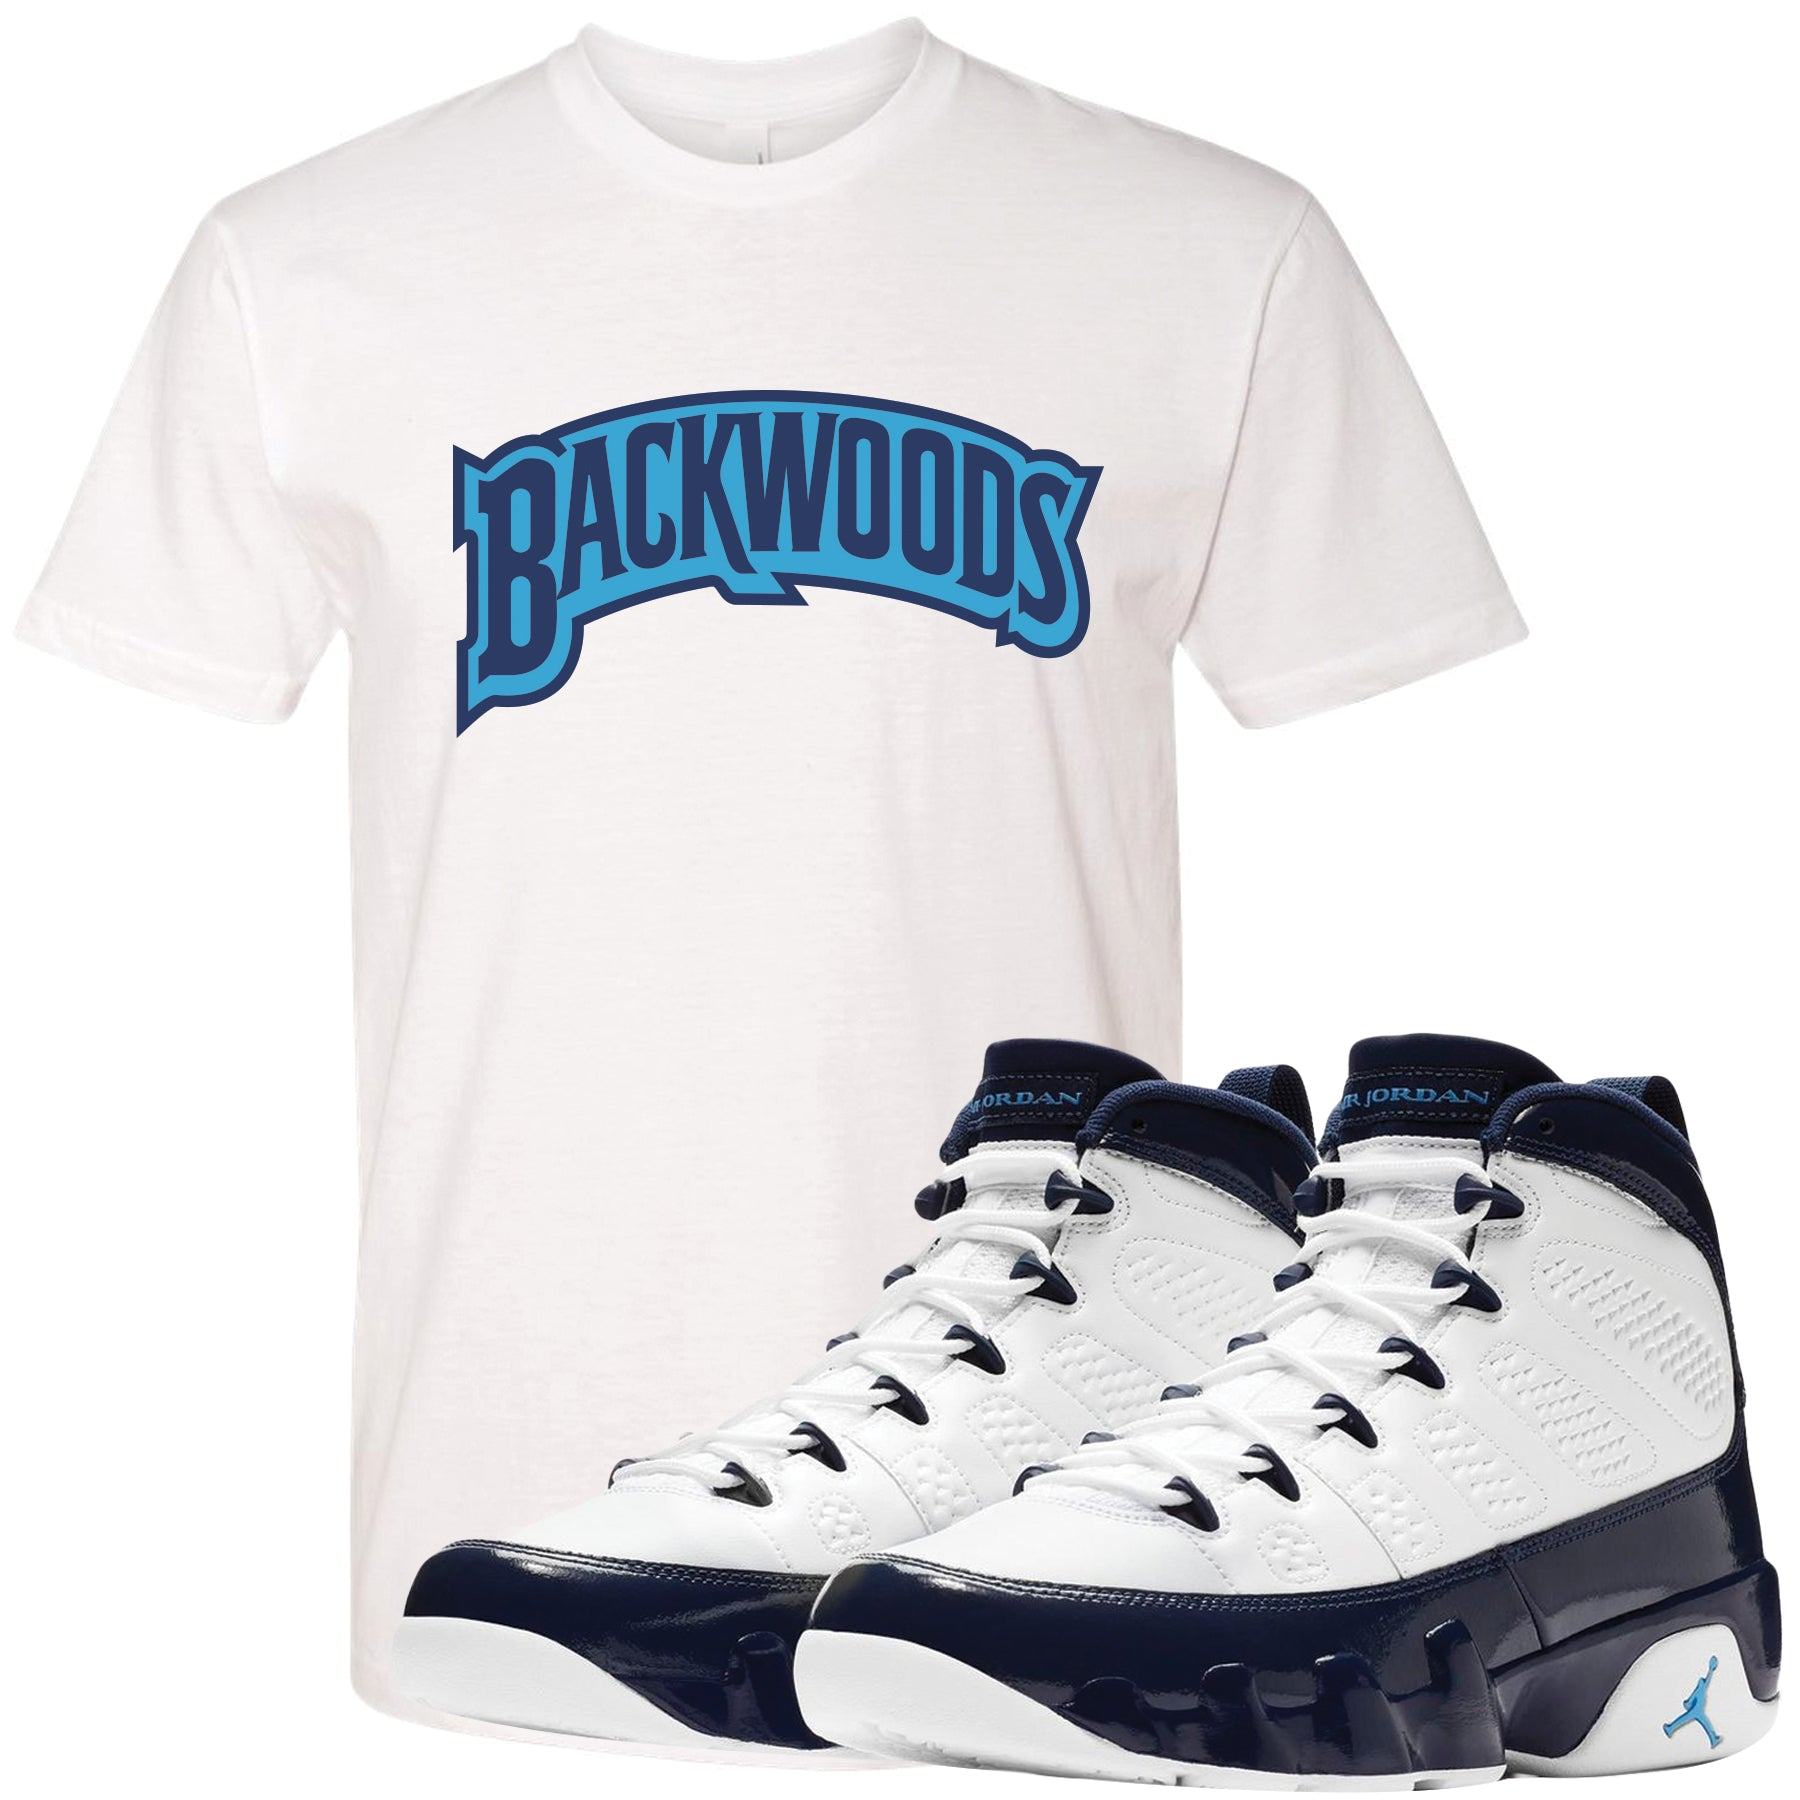 53ae7f92572 Match your pair of Jordan 9 UNC All Star Blue Pearl sneakers with this  sneaker matching